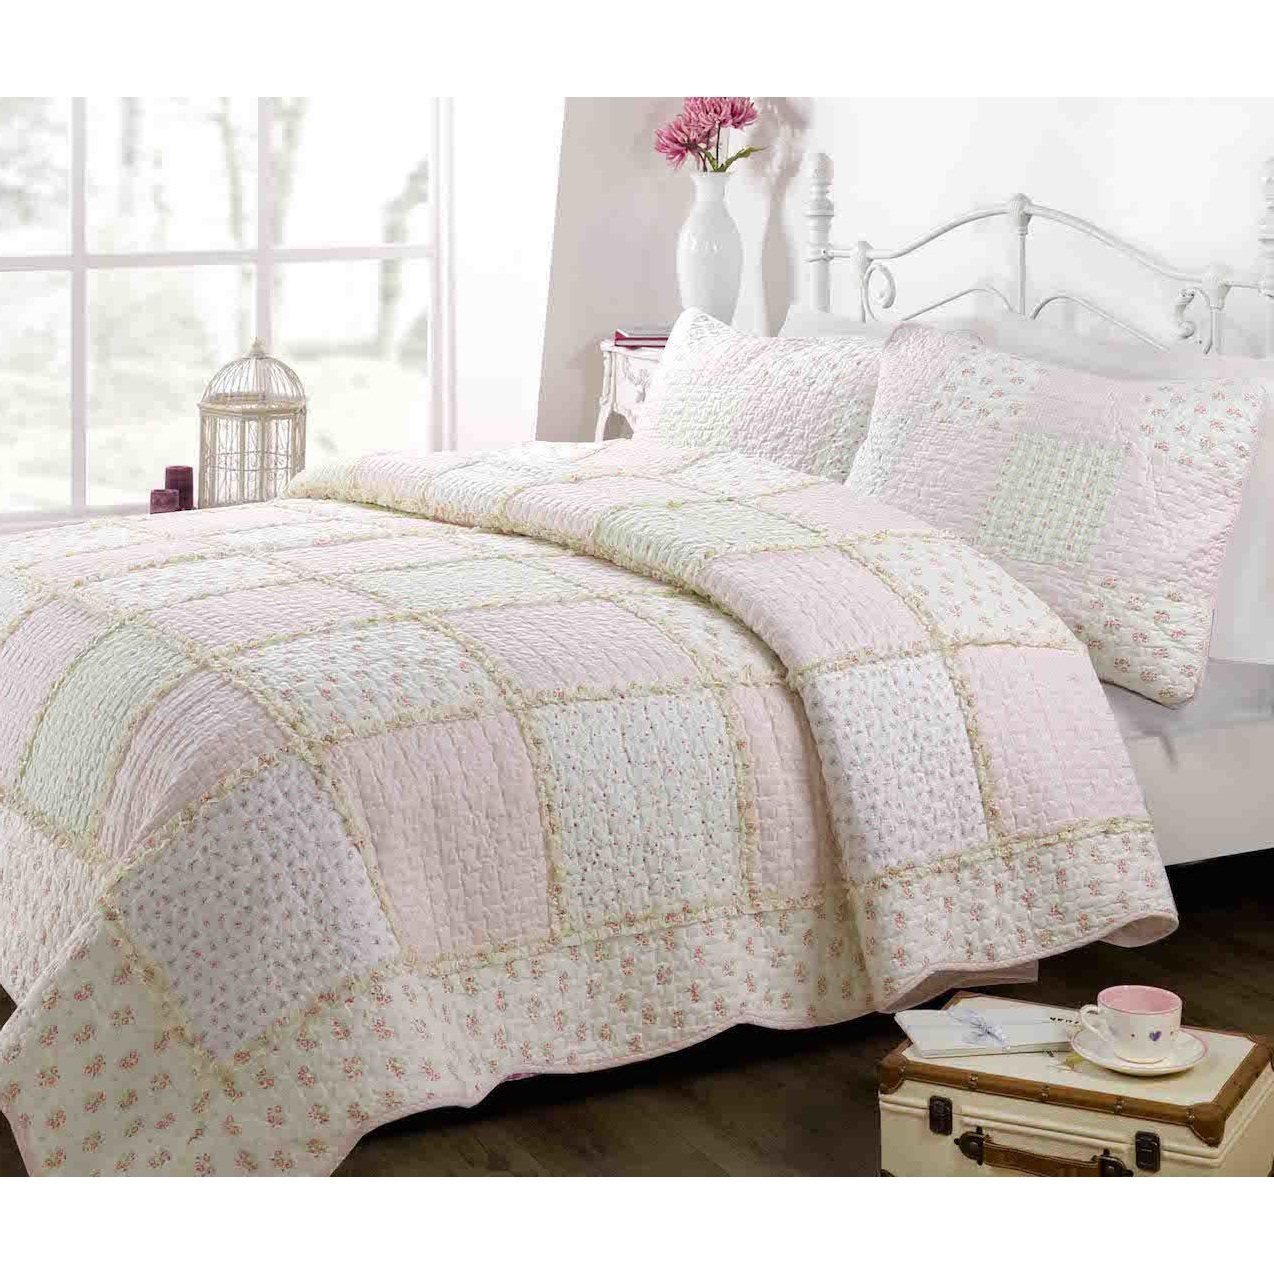 2 Piece Girls, Perfect Floral Pattern Quilt Set Twin, Contemporary Classic French Country Patchwork Design, Shabby Chic Gingham Style Themed, Charming Printed Bedding, Adorable Multi, Color